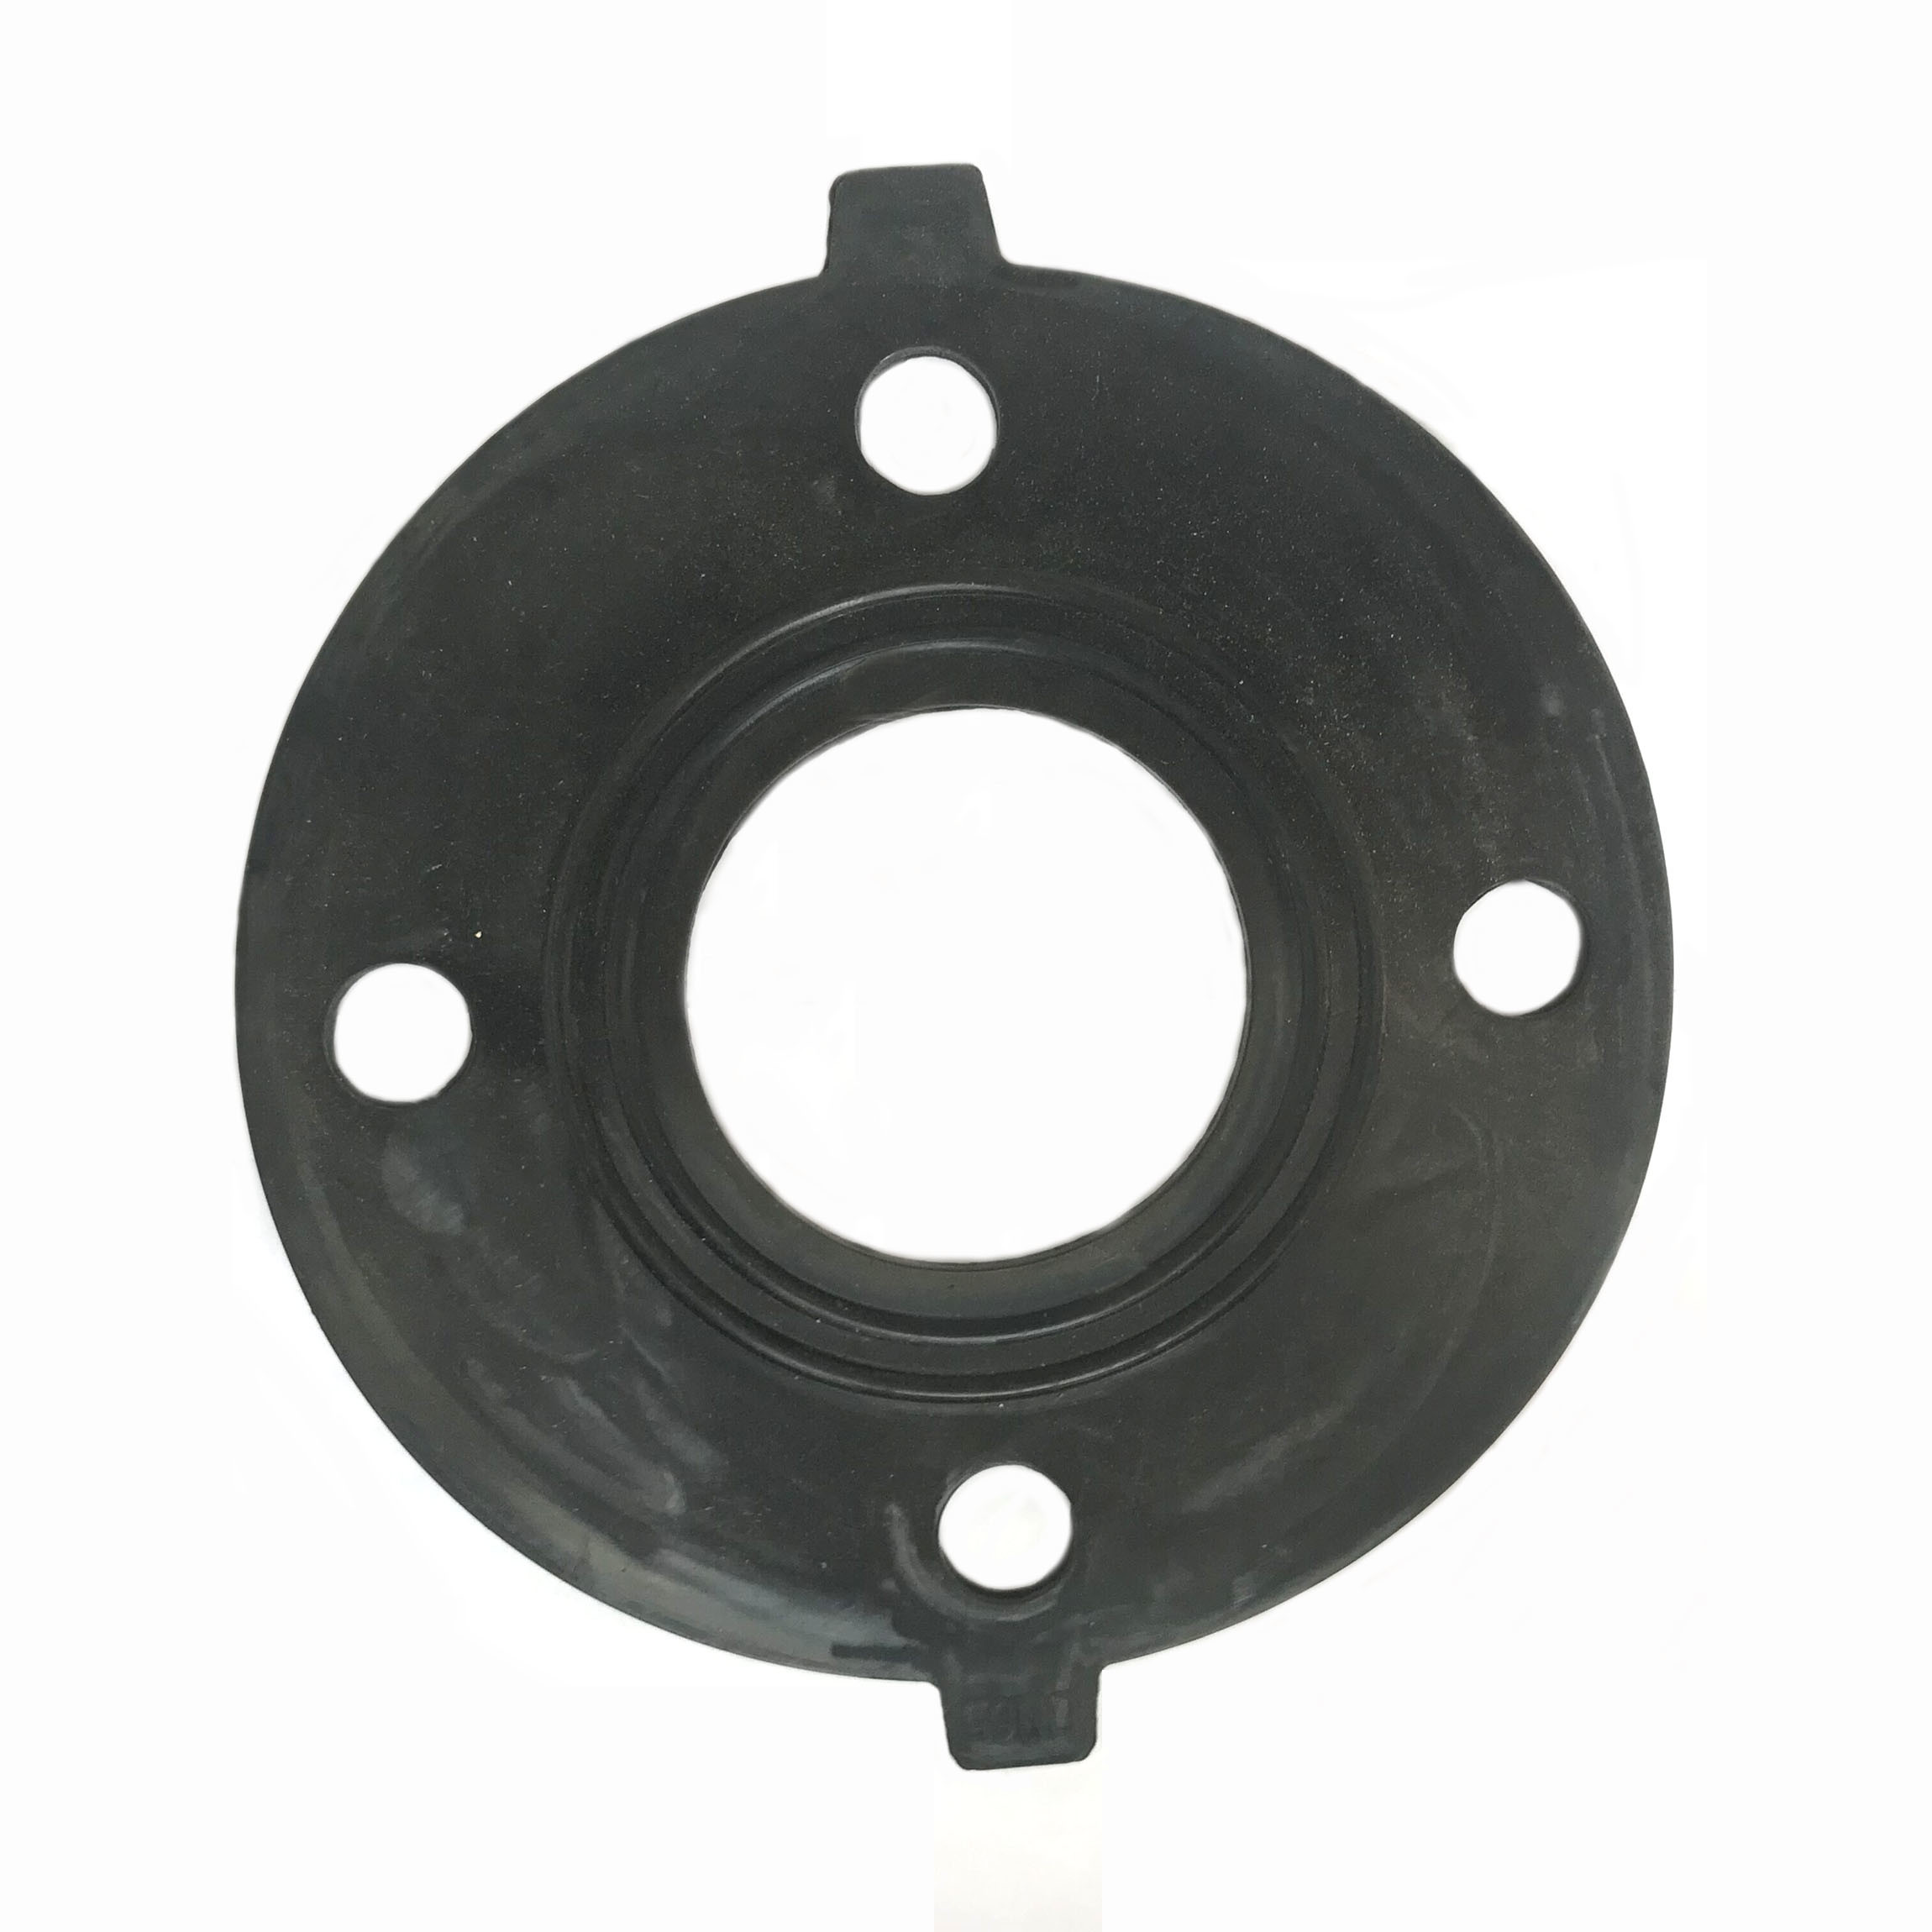 Flat Gasket From China Factory Custom Rubber Products